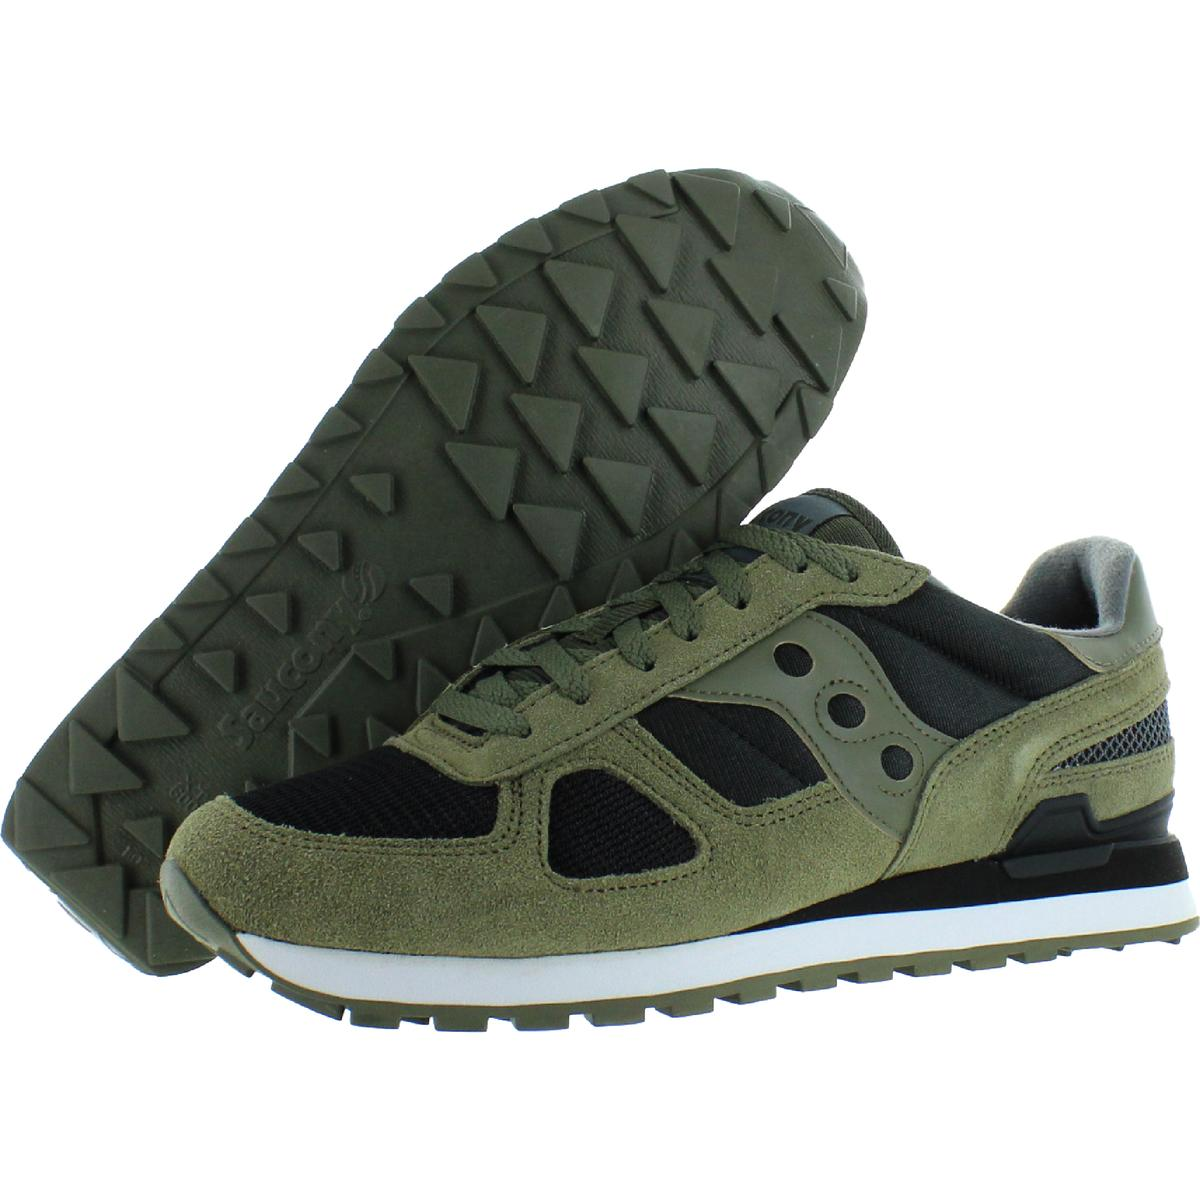 Saucony-Mens-Shadow-Original-Trainers-Suede-Comfort-Sneakers-Shoes-BHFO-0431 miniatuur 28